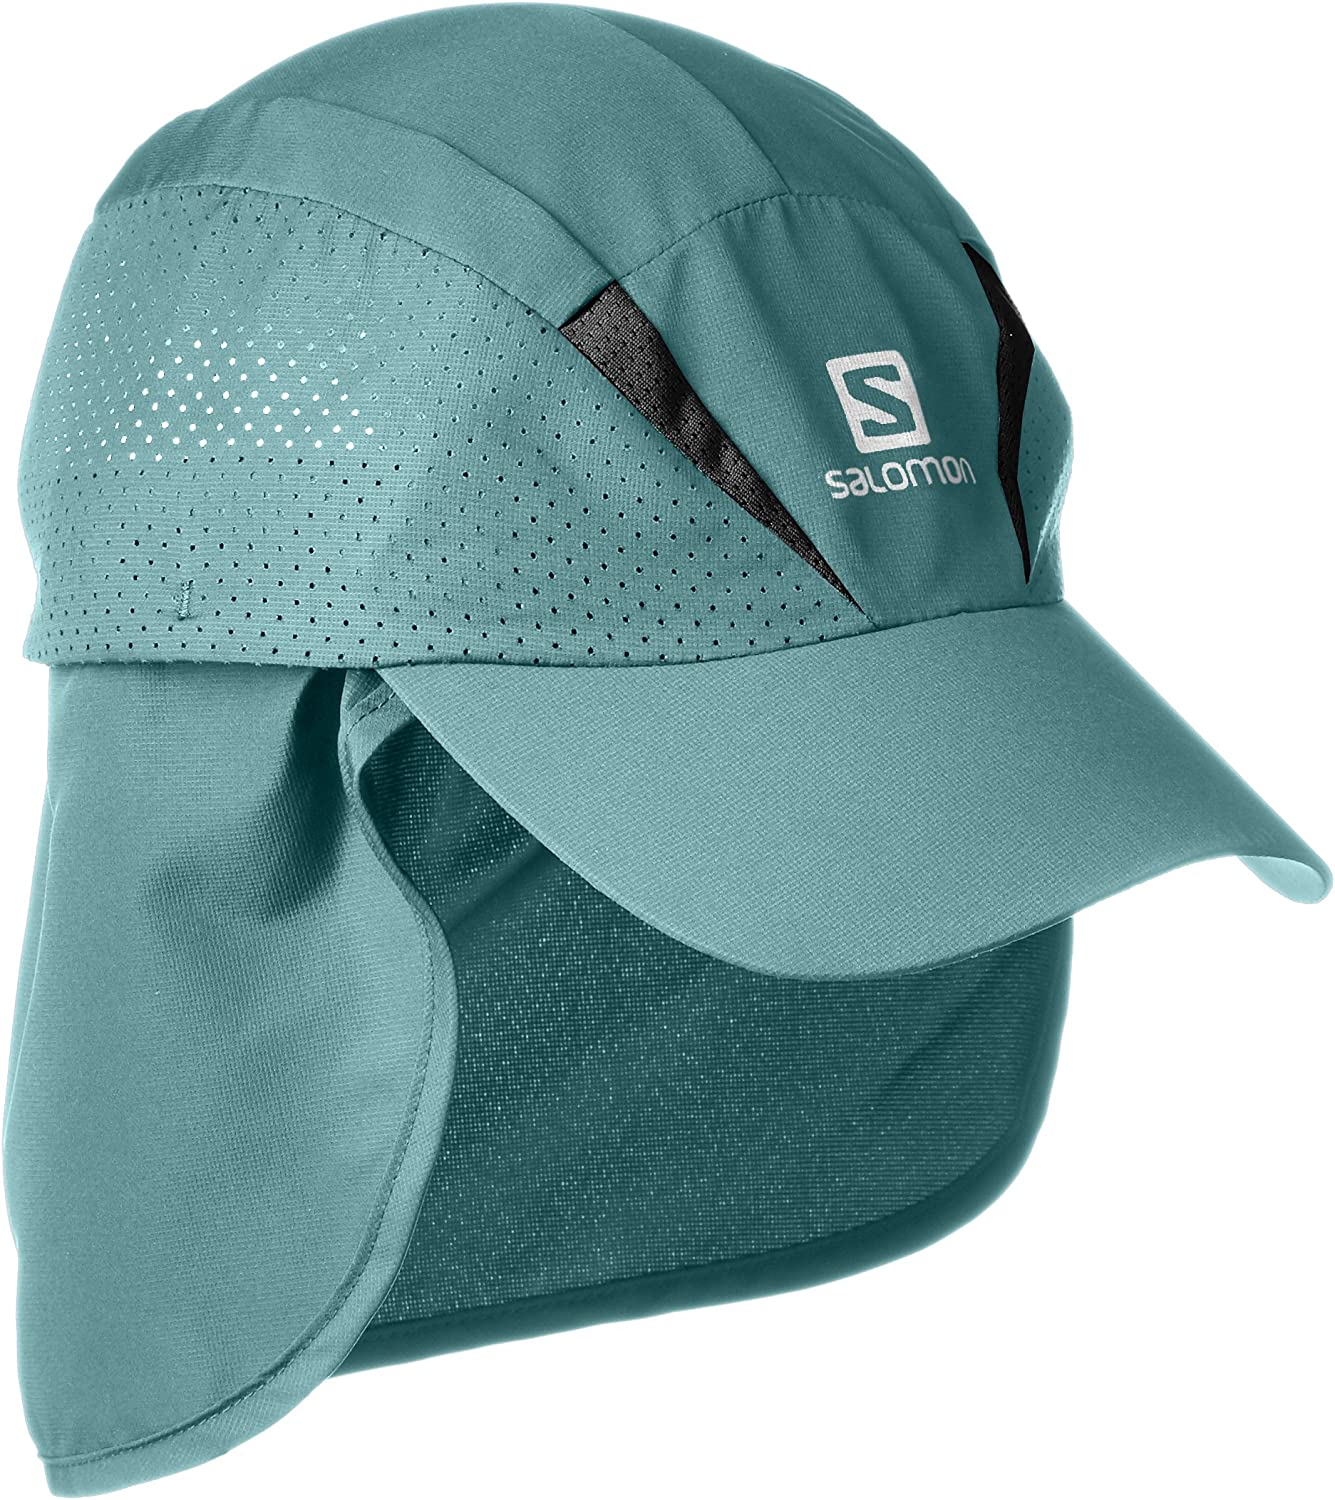 SALOMON XA+ North Atlantic - Gorra Hombre: Amazon.es: Ropa y ...